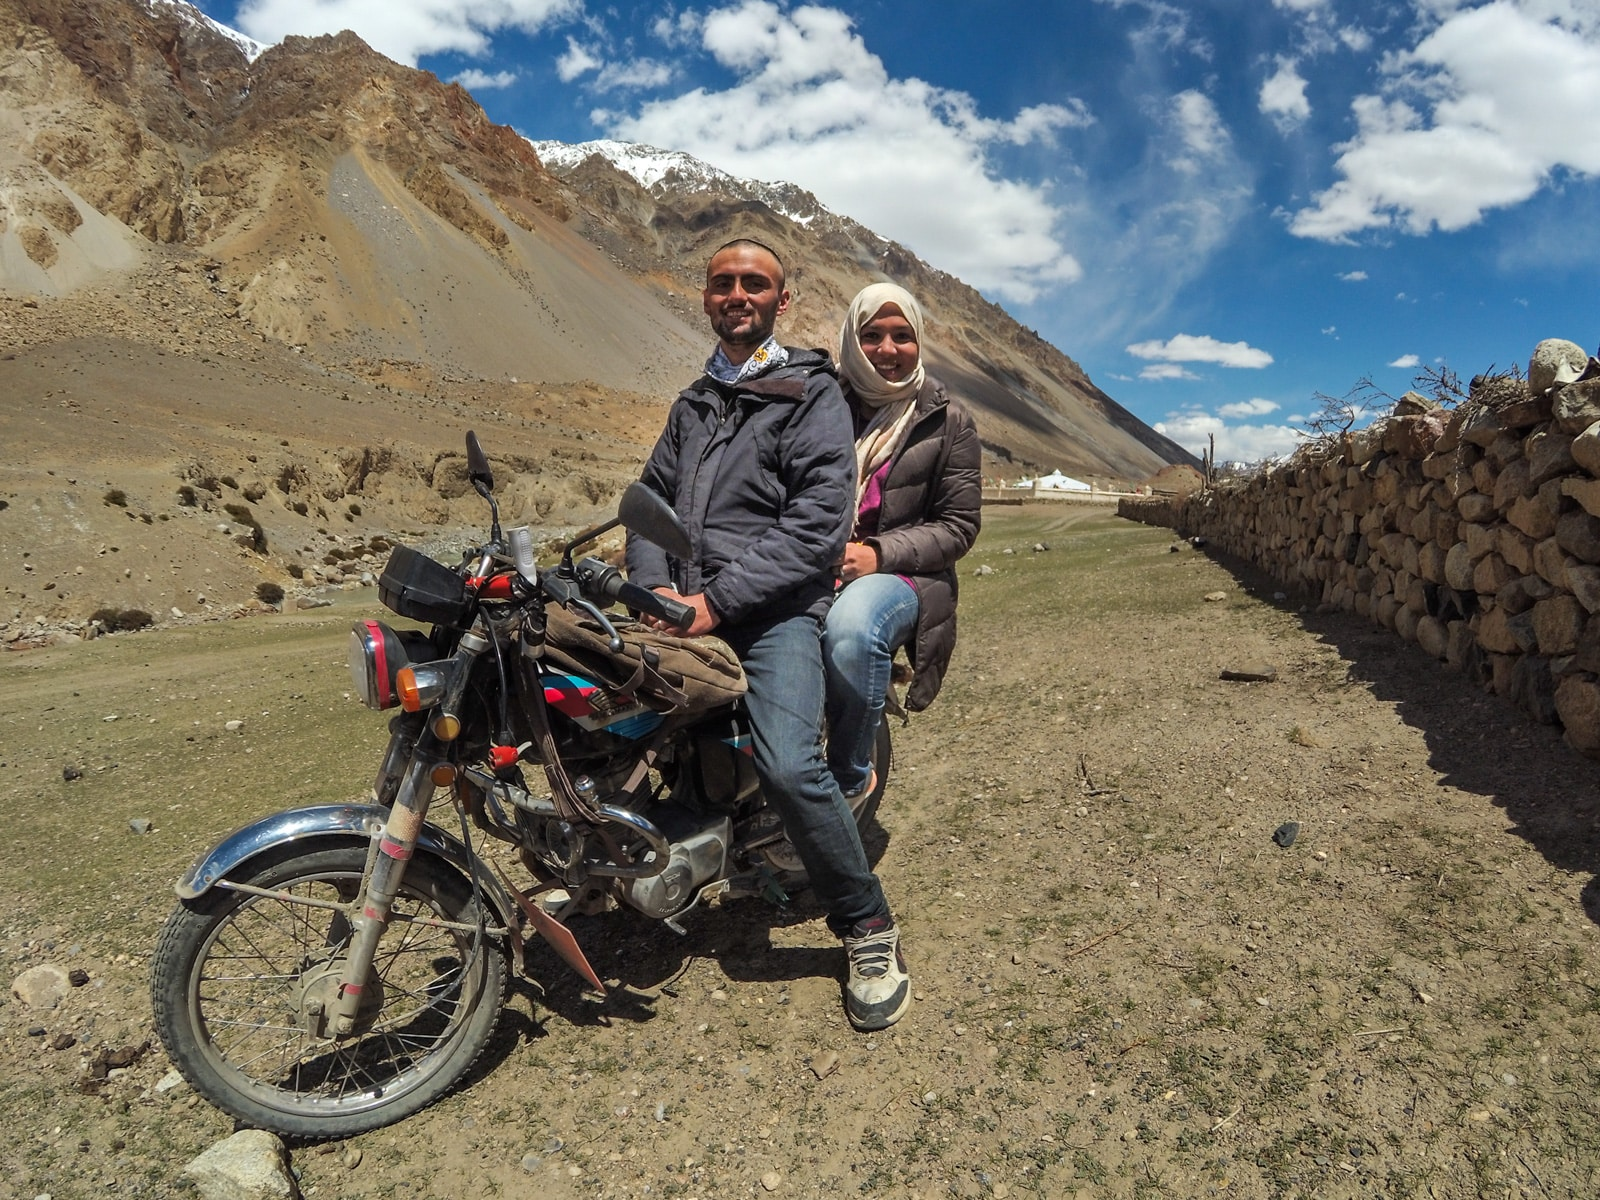 Bossy travelers interview with Aneeqa, head of Pakistan's first female-run tour company - Aneeqa on a motorbike in Gilgit Baltistan